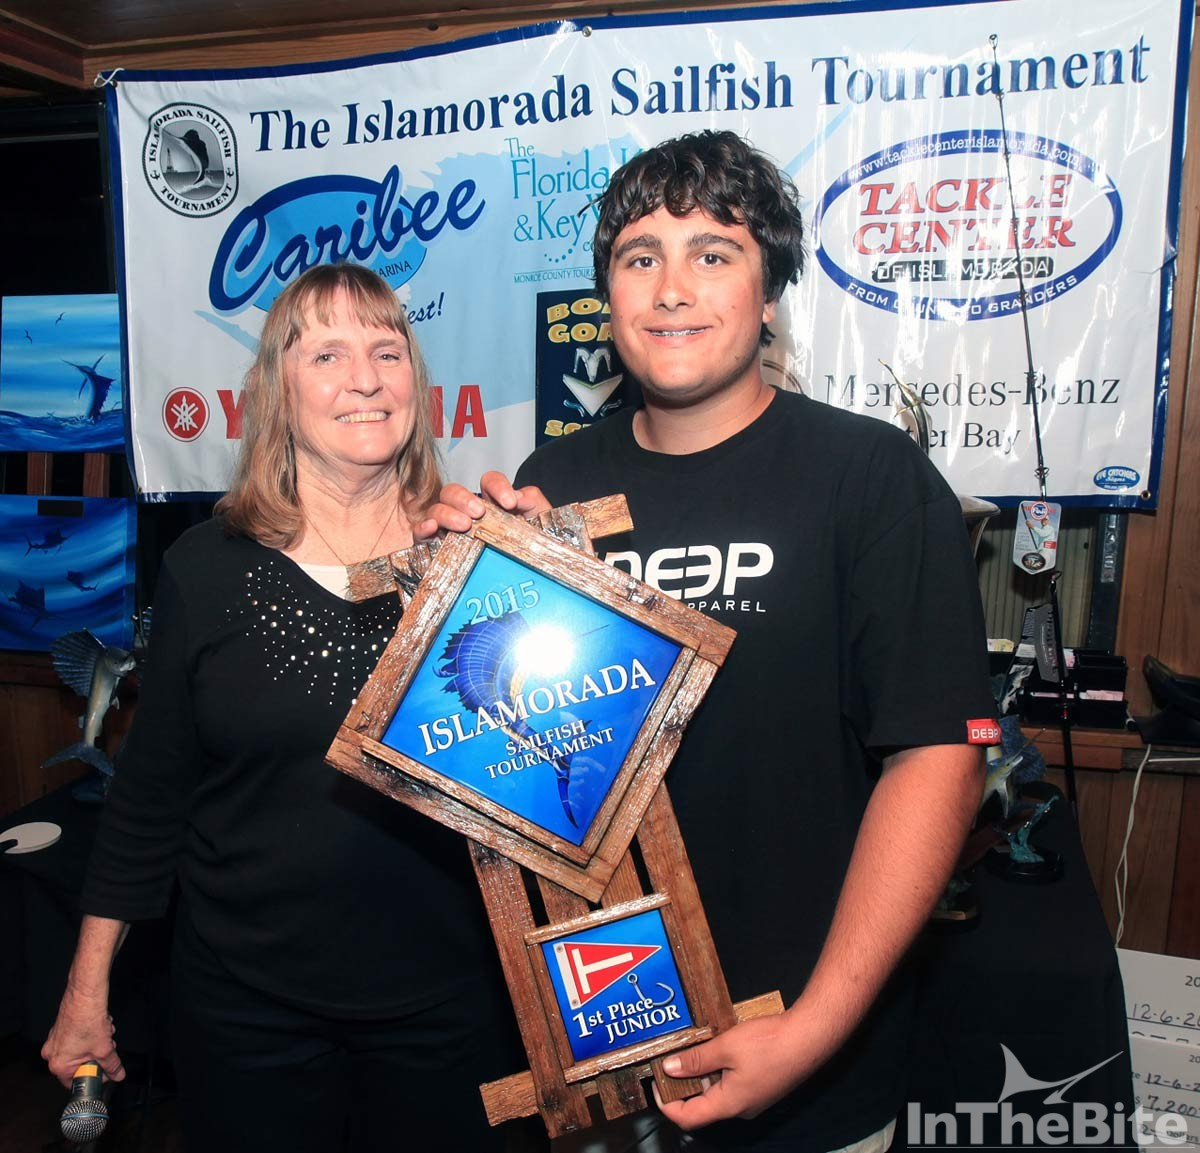 2015 Islamorada Sailfish Tournament Results